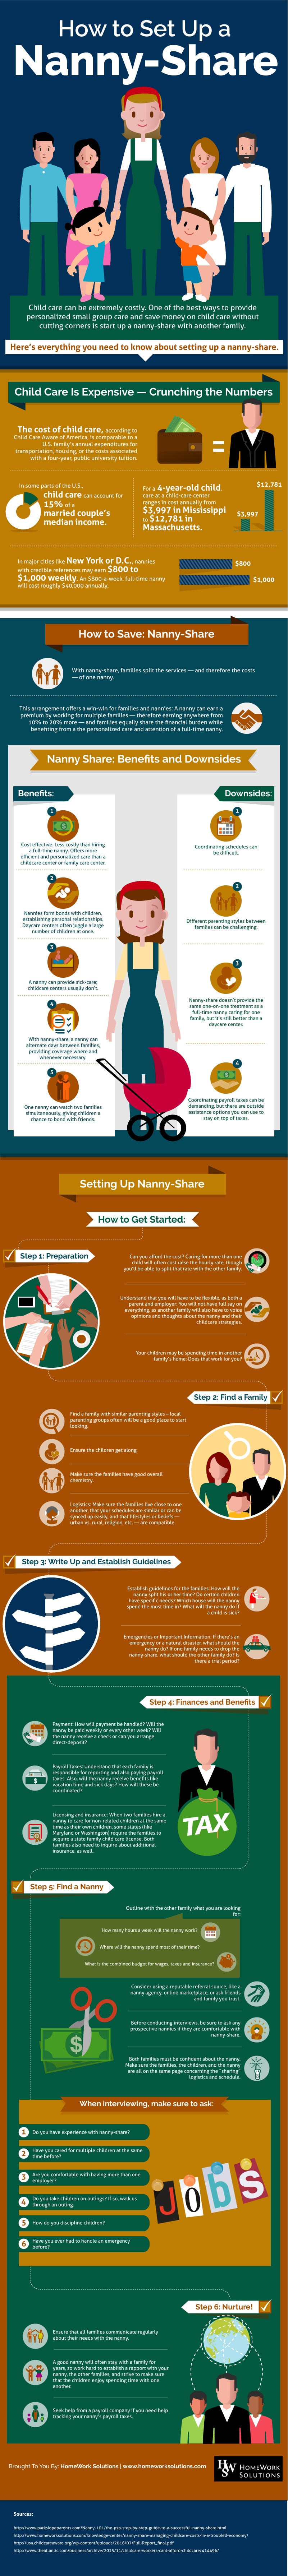 1608_ig_home-work-solutions_how-to-nanny-share_v2.jpg